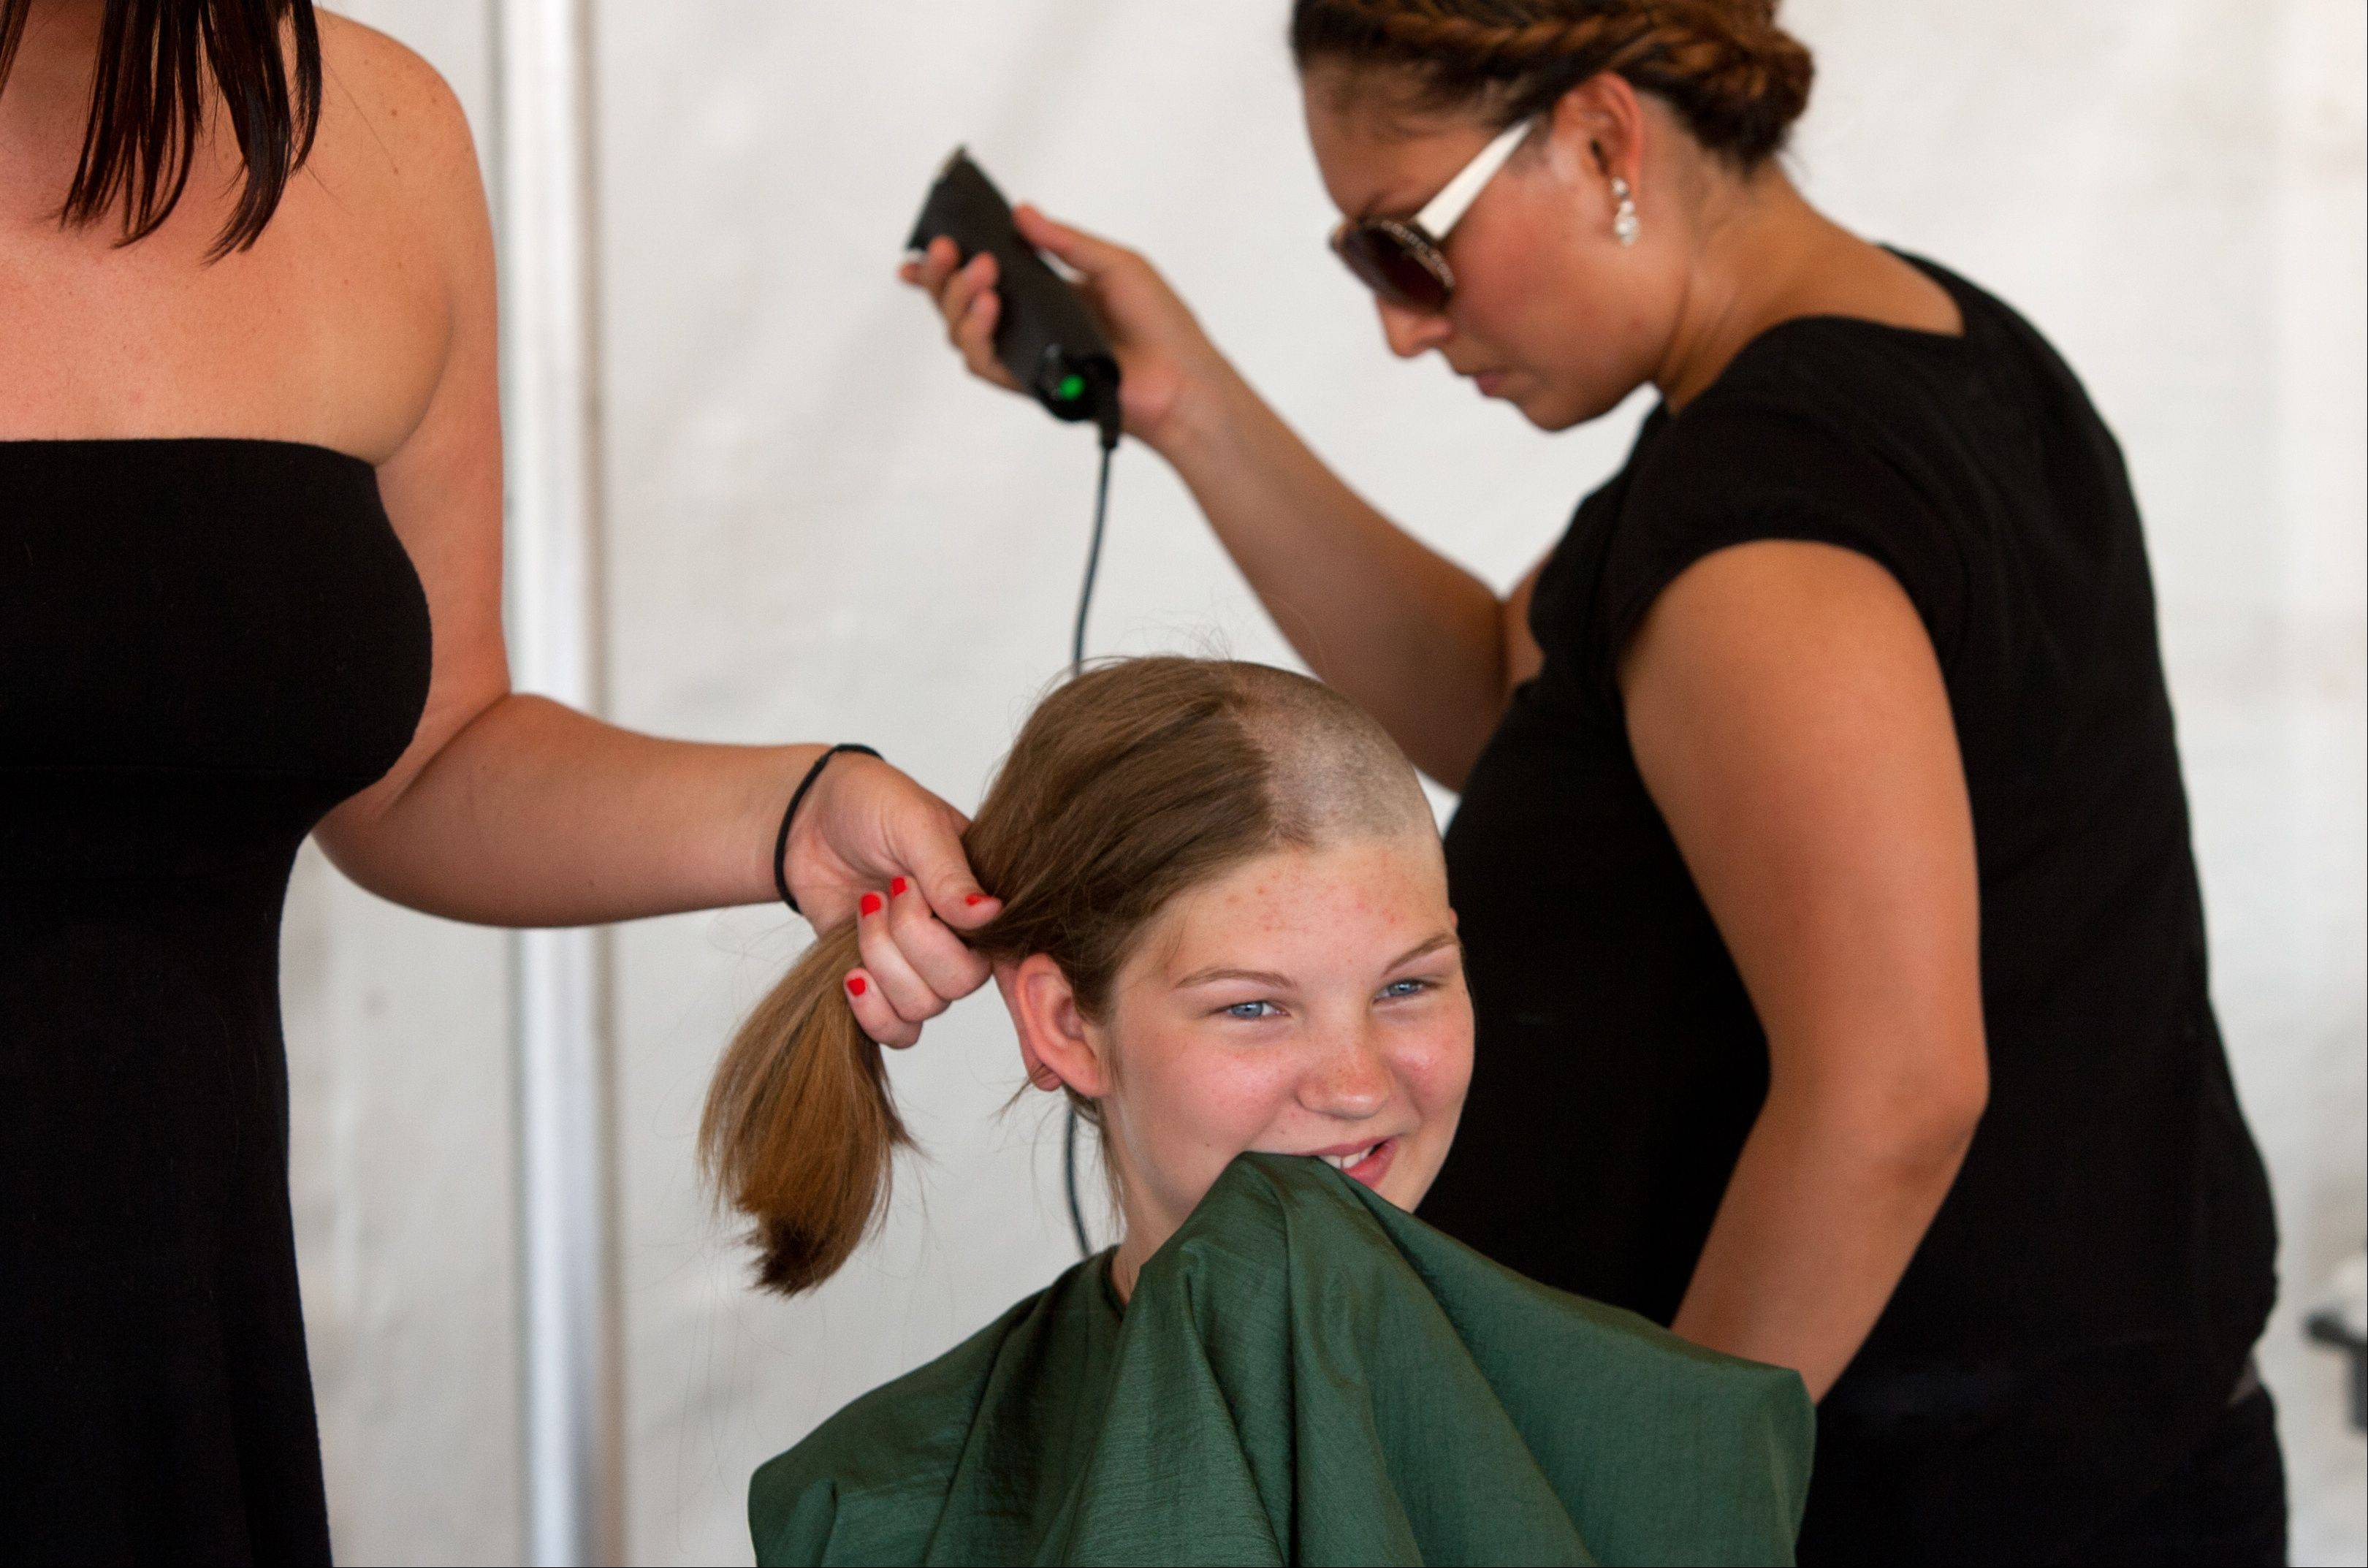 Jessica Nichols, 11, of Downers Grove gets her head shaved courtesy of Cristy Vazquez of Paul Mitchell the School Chicago, for the St. Baldricks' charity at the Taste of Lombard.